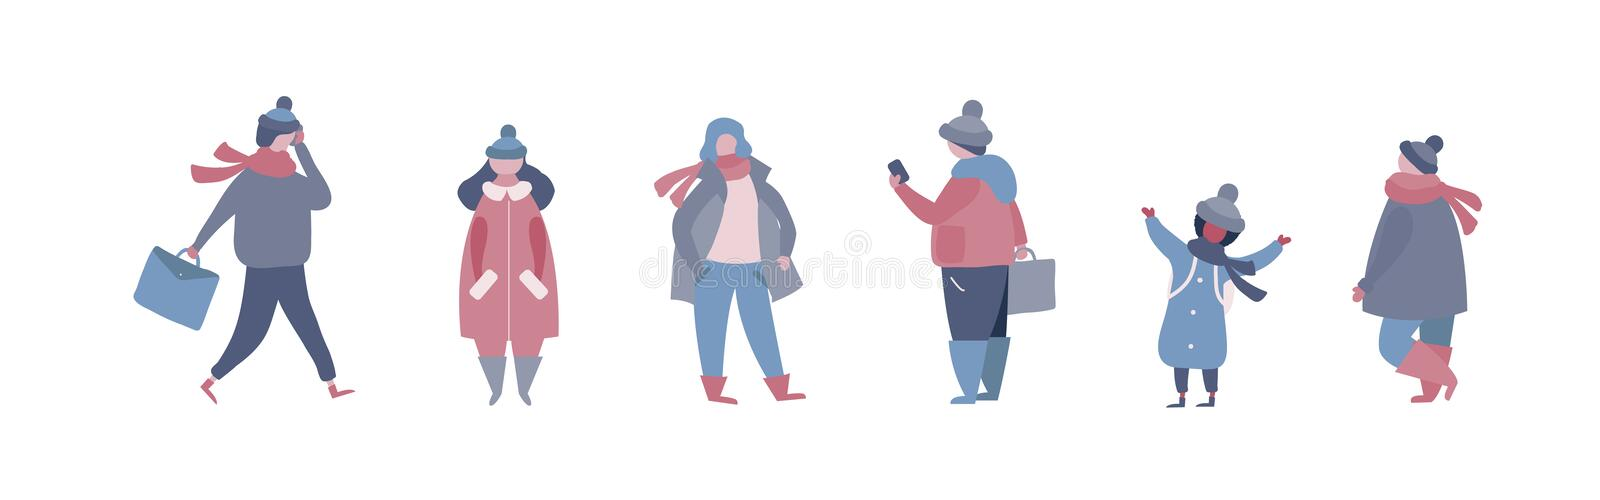 People in warm winter clothes walking on street, going to work, talking on phone. Women men children in outerwear performing outdoor activities. Vector royalty free illustration